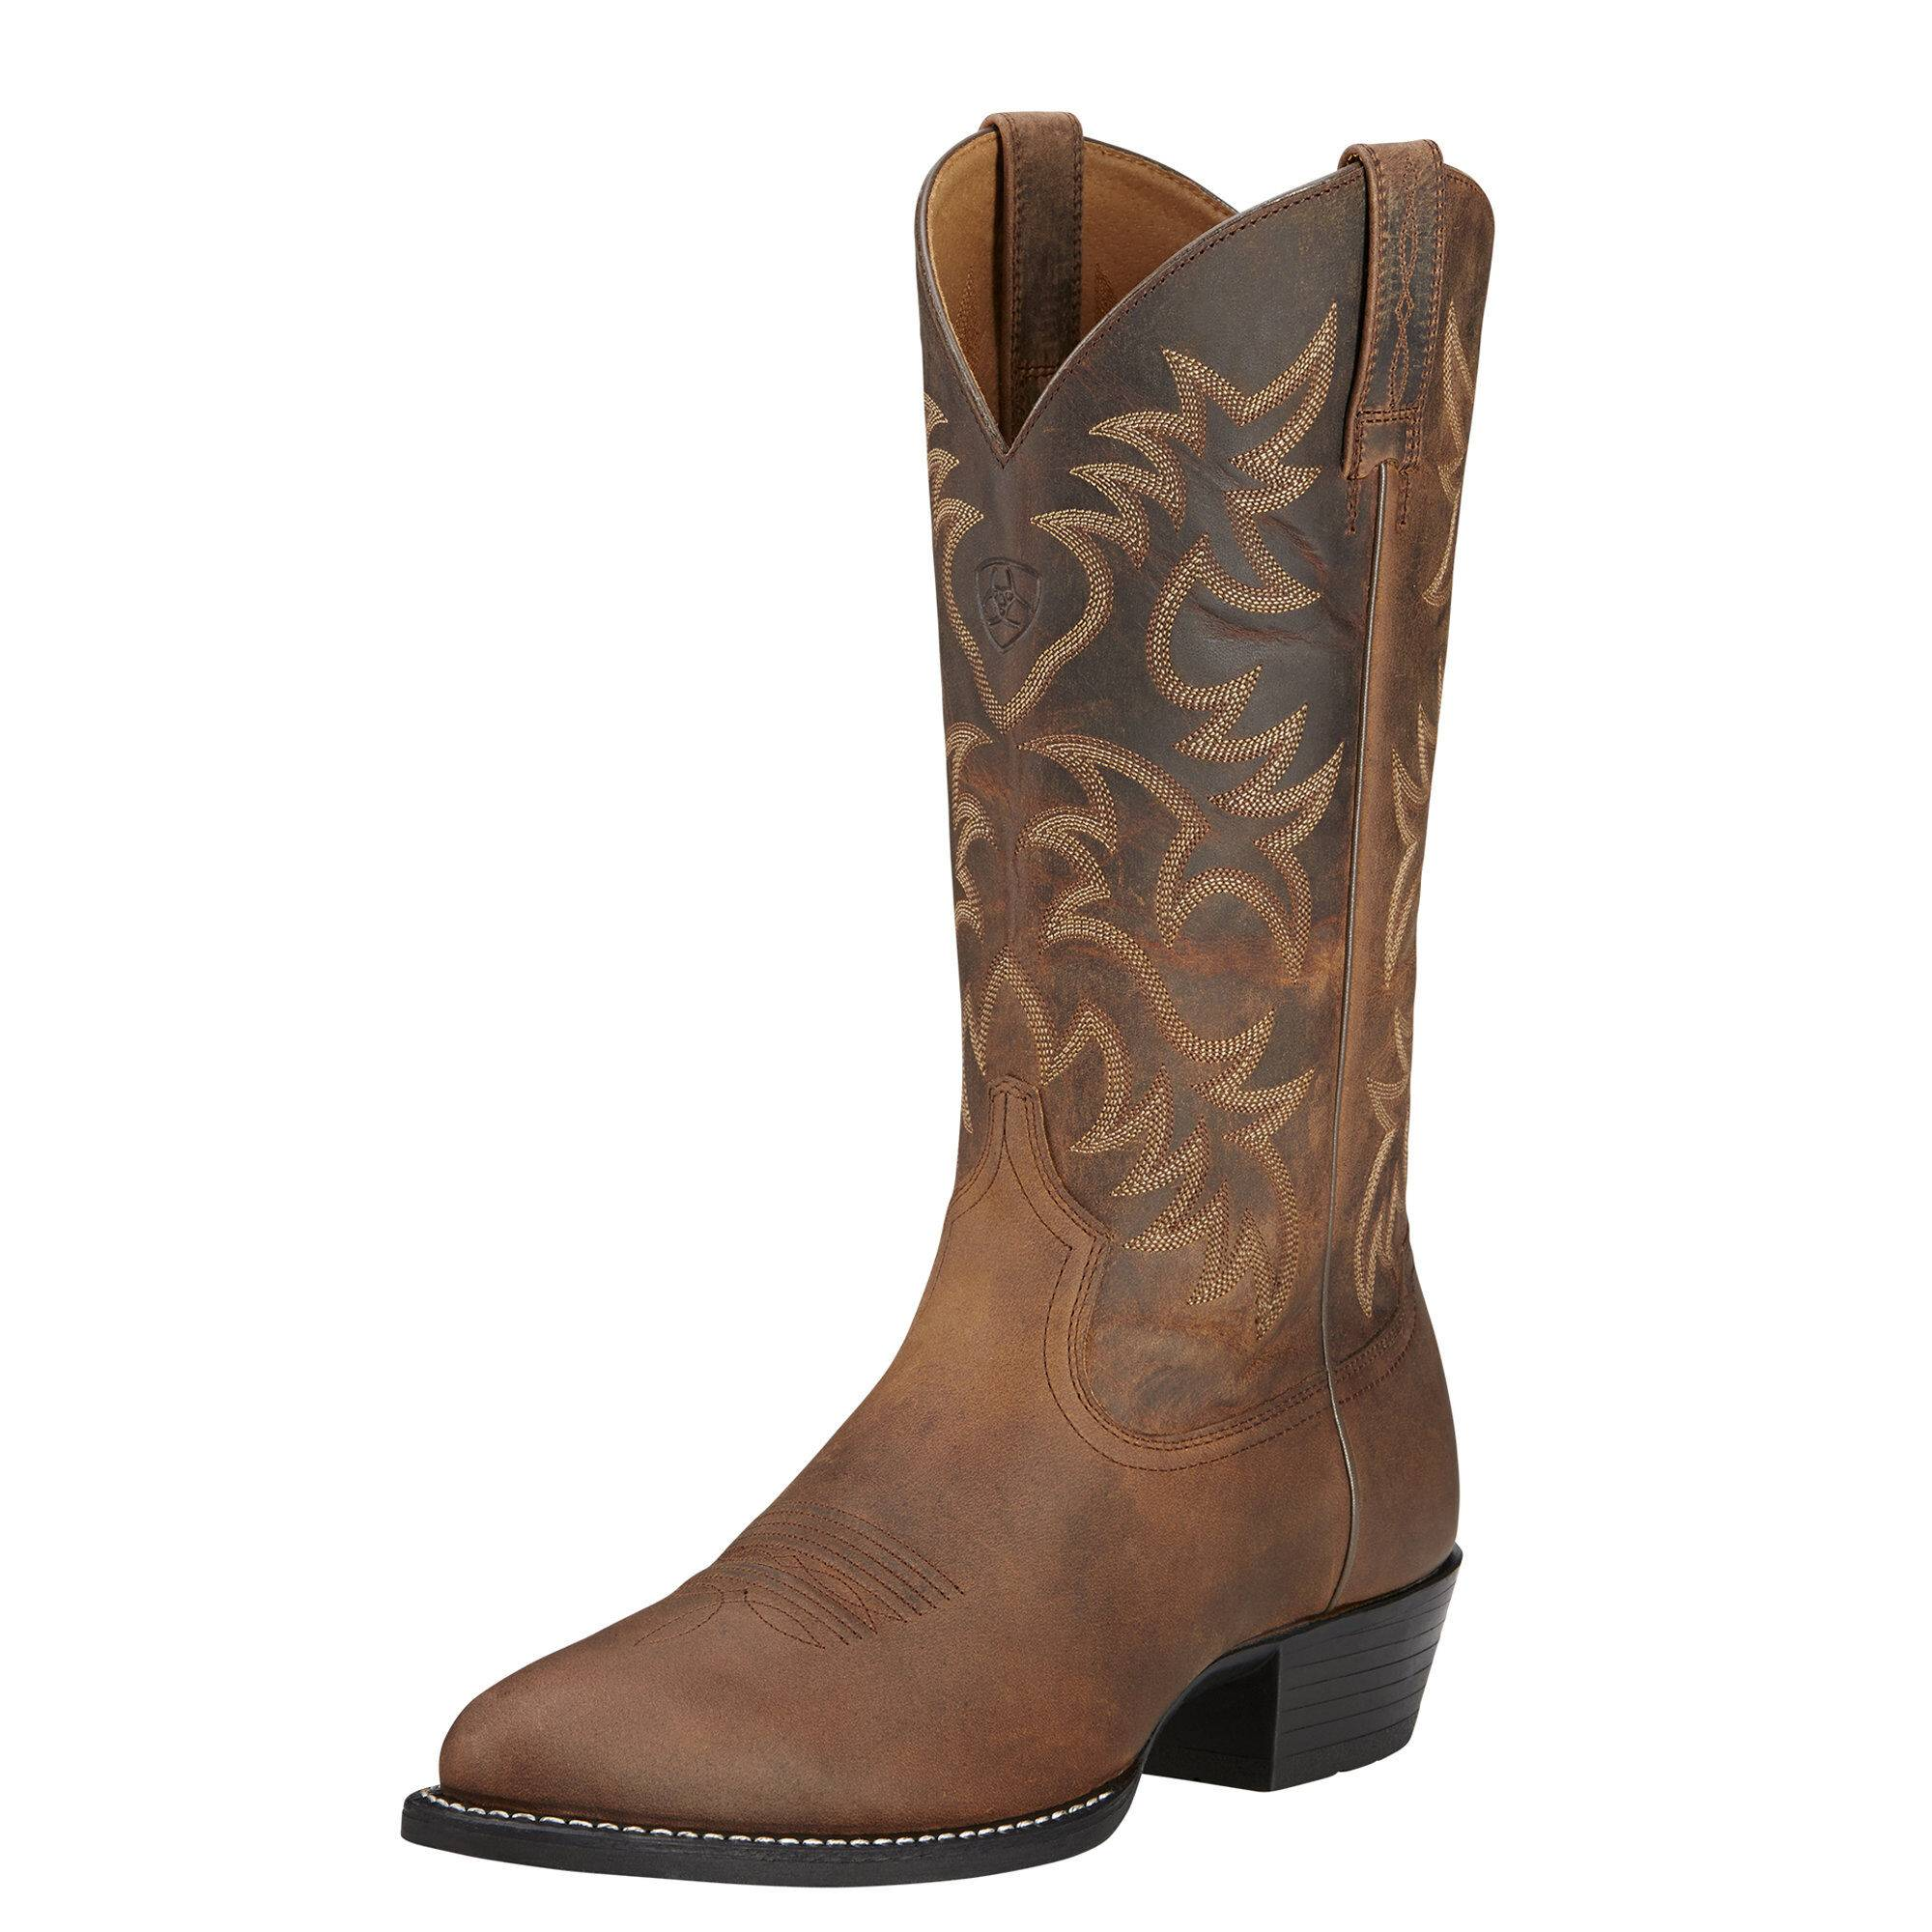 Ariat Men's Heritage R Toe Western Boots in Distressed Brown Leather, Size 9 EE / Wide by Ariat